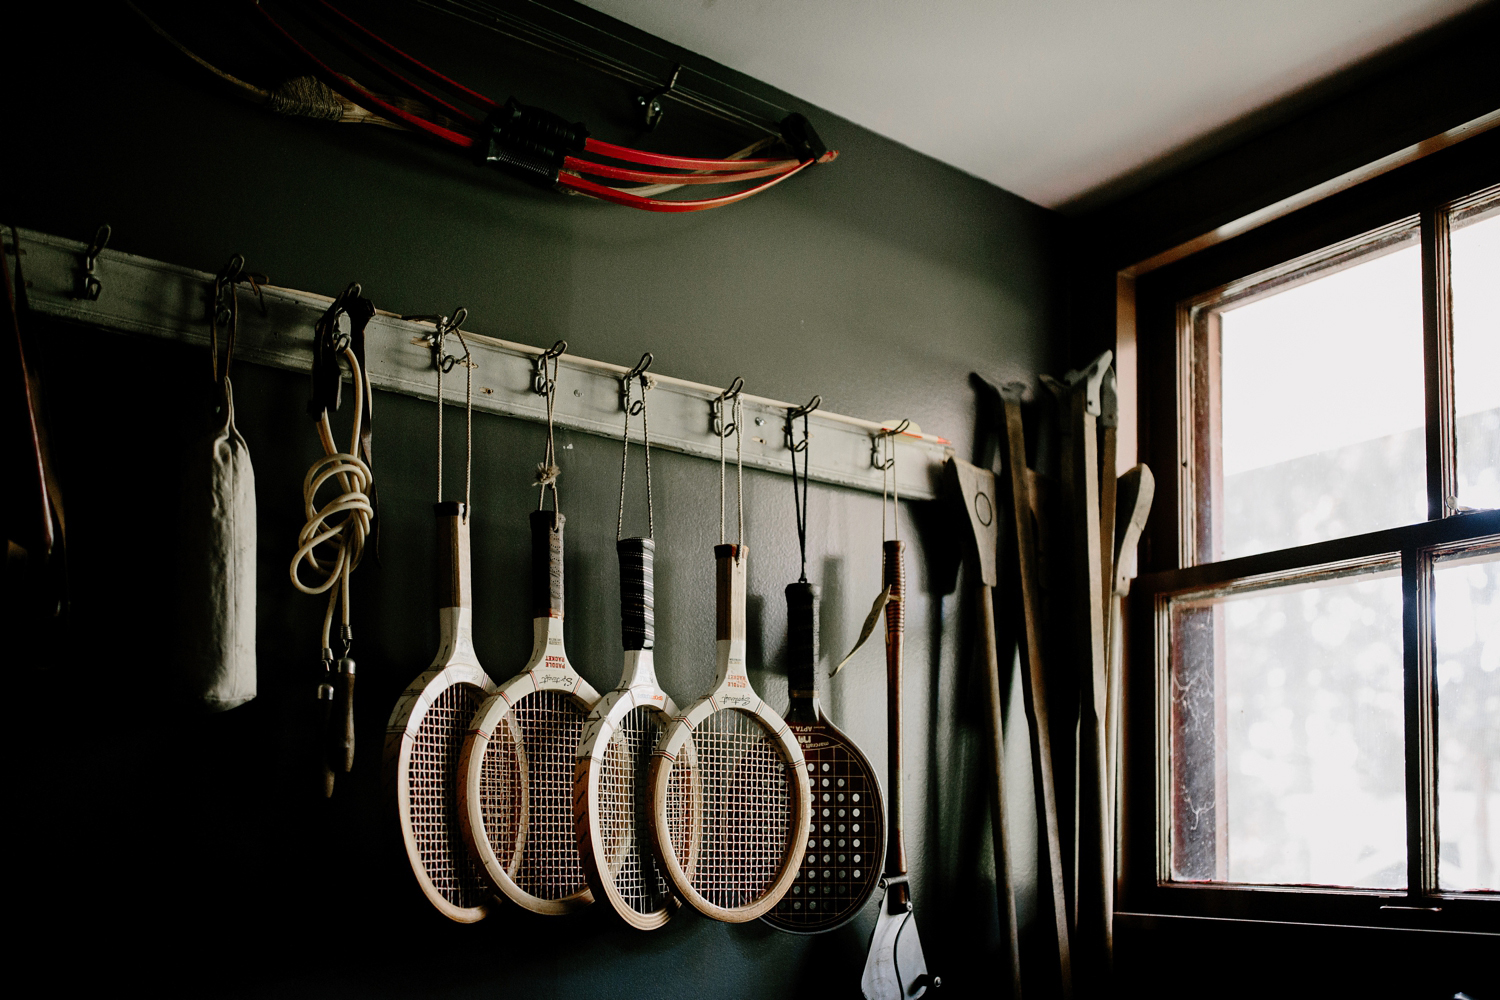 vintage tennis rackets in window